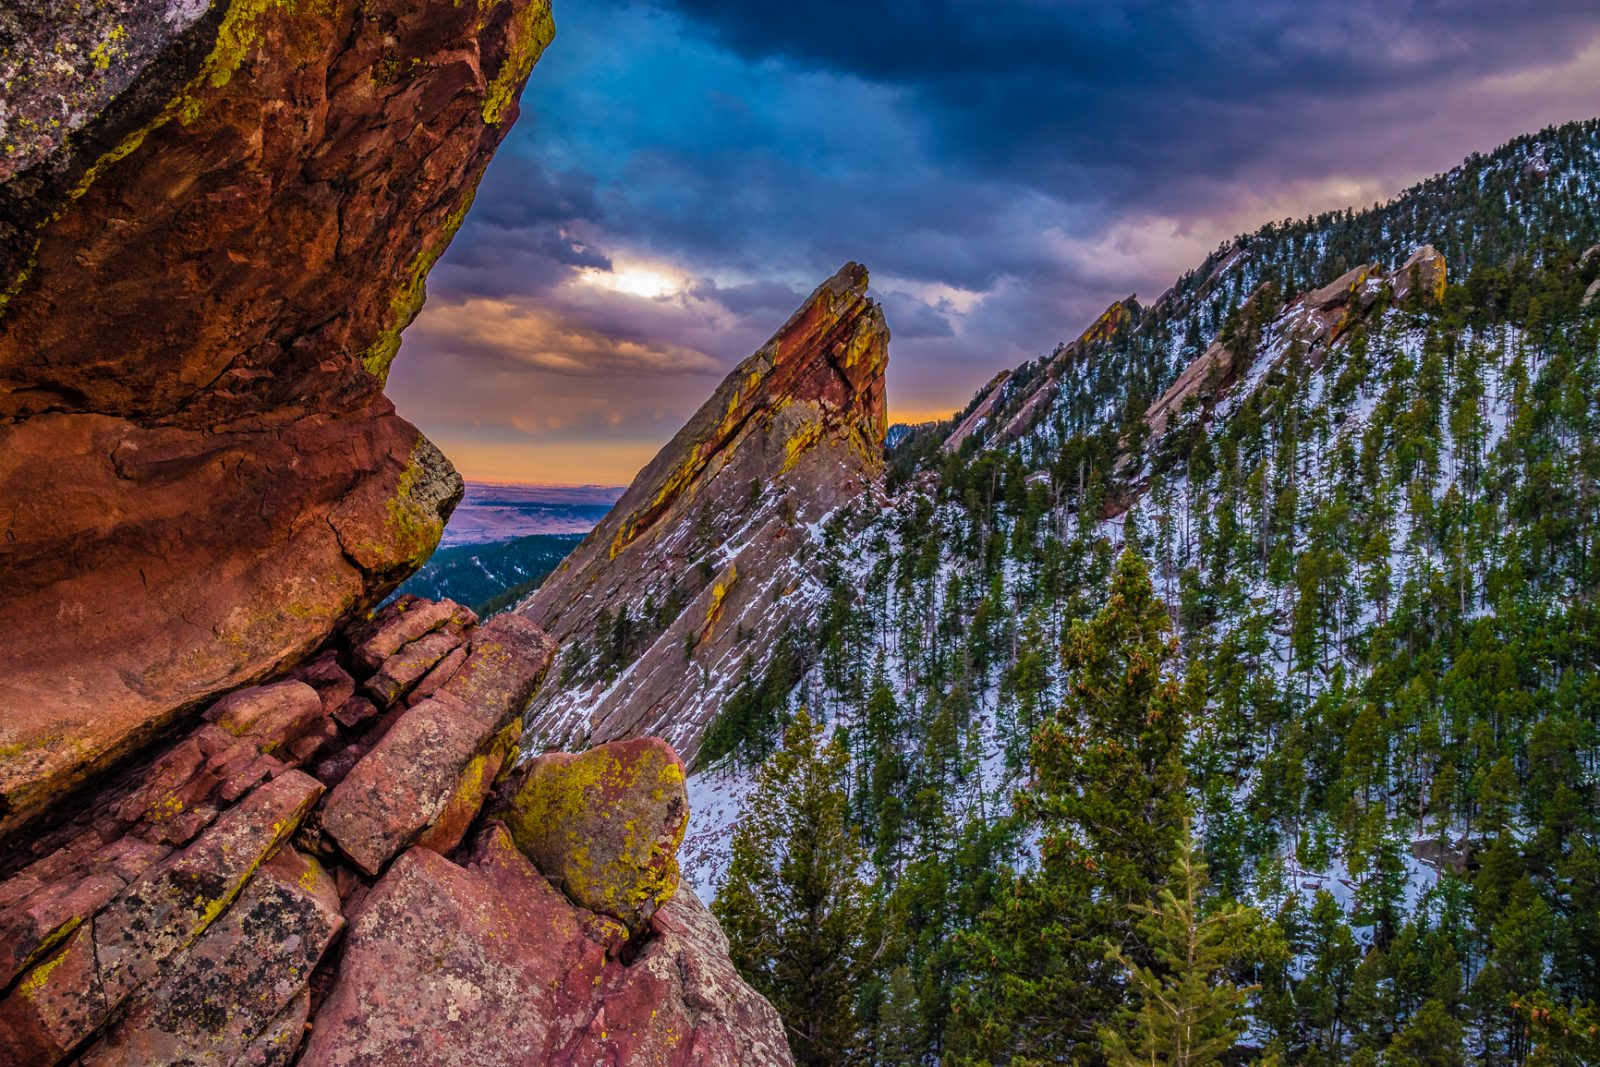 Sunset on the Flat Irons